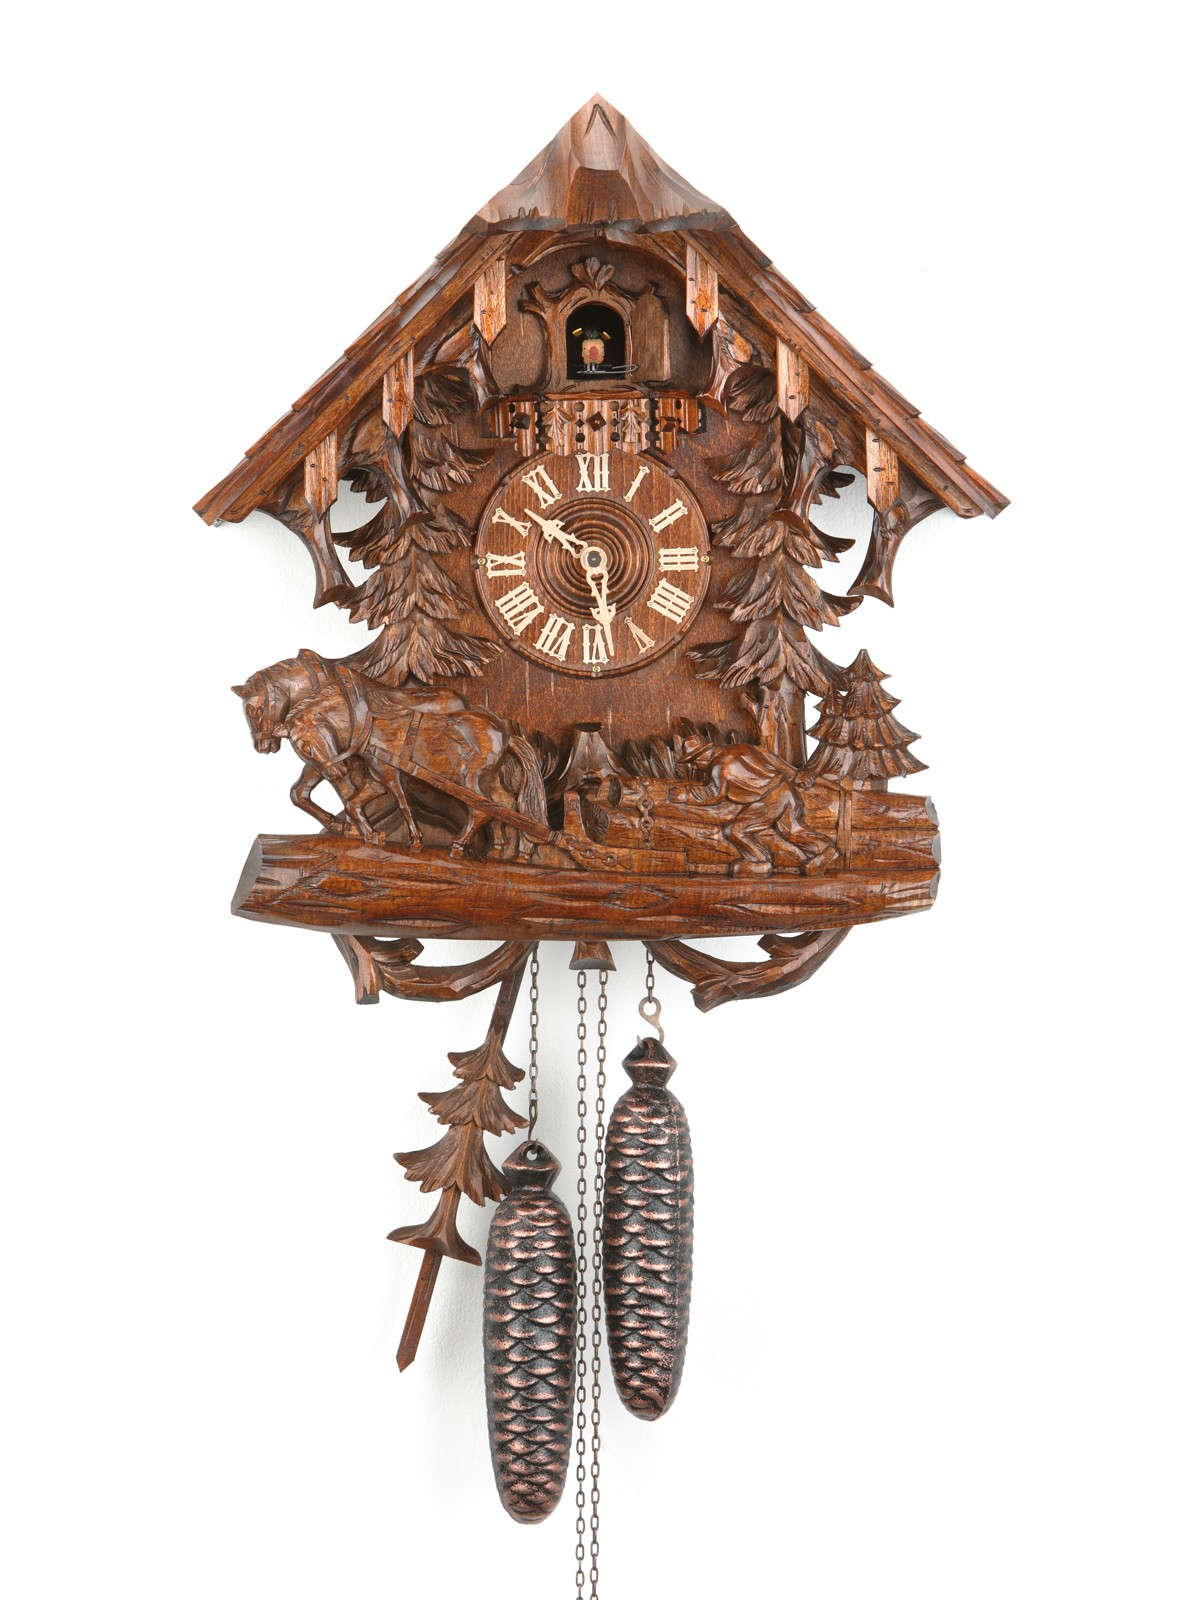 Exclusive cuckoo clock in brown made of wood with horse ornament for home accessories ideas